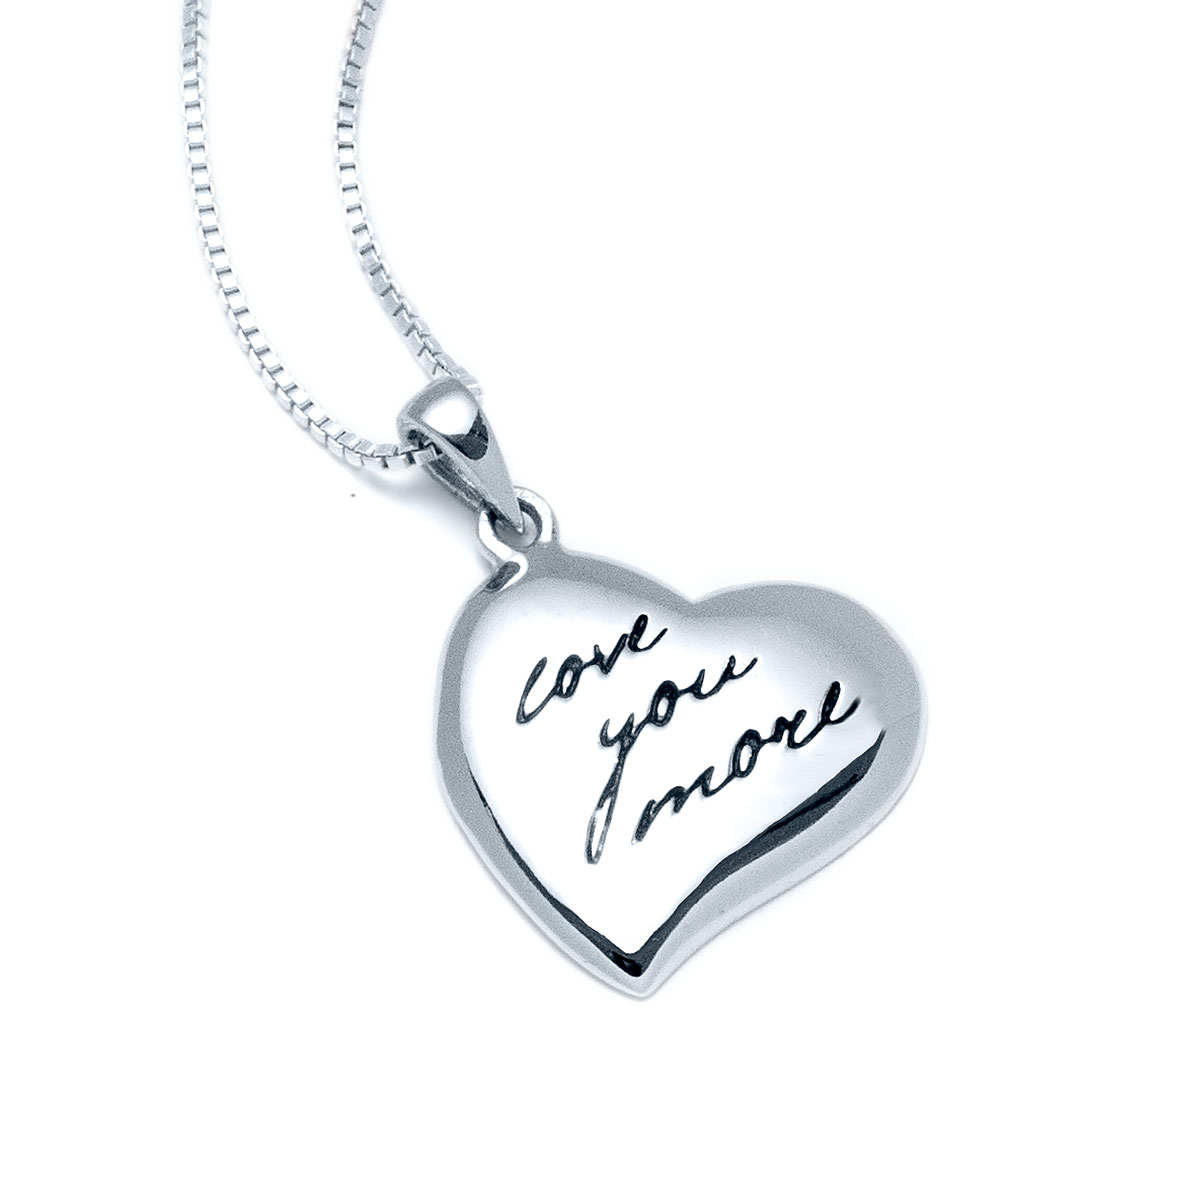 Explore The Sweetheart Gift Guide | Landing Company Within Most Popular Heart & Love You More Round Pendant Necklaces (View 11 of 25)